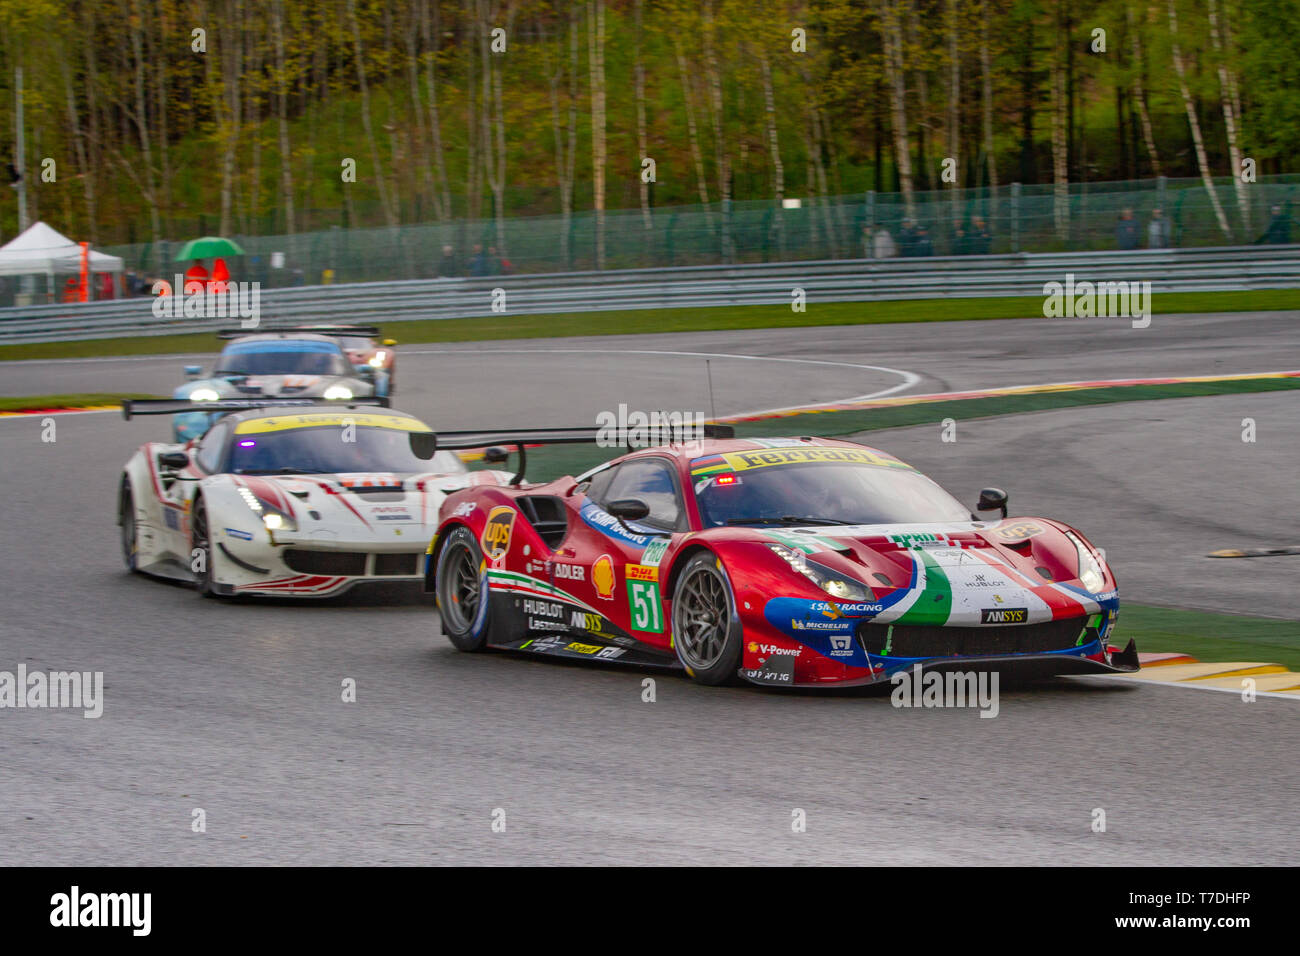 AF Corse Ferrari 488 leads through Les Combes chicane. WEC Total 6 Hours of Spa-Francorchamps 2019. No. 51 was 2nd in LMGTE Pro category. Stock Photo